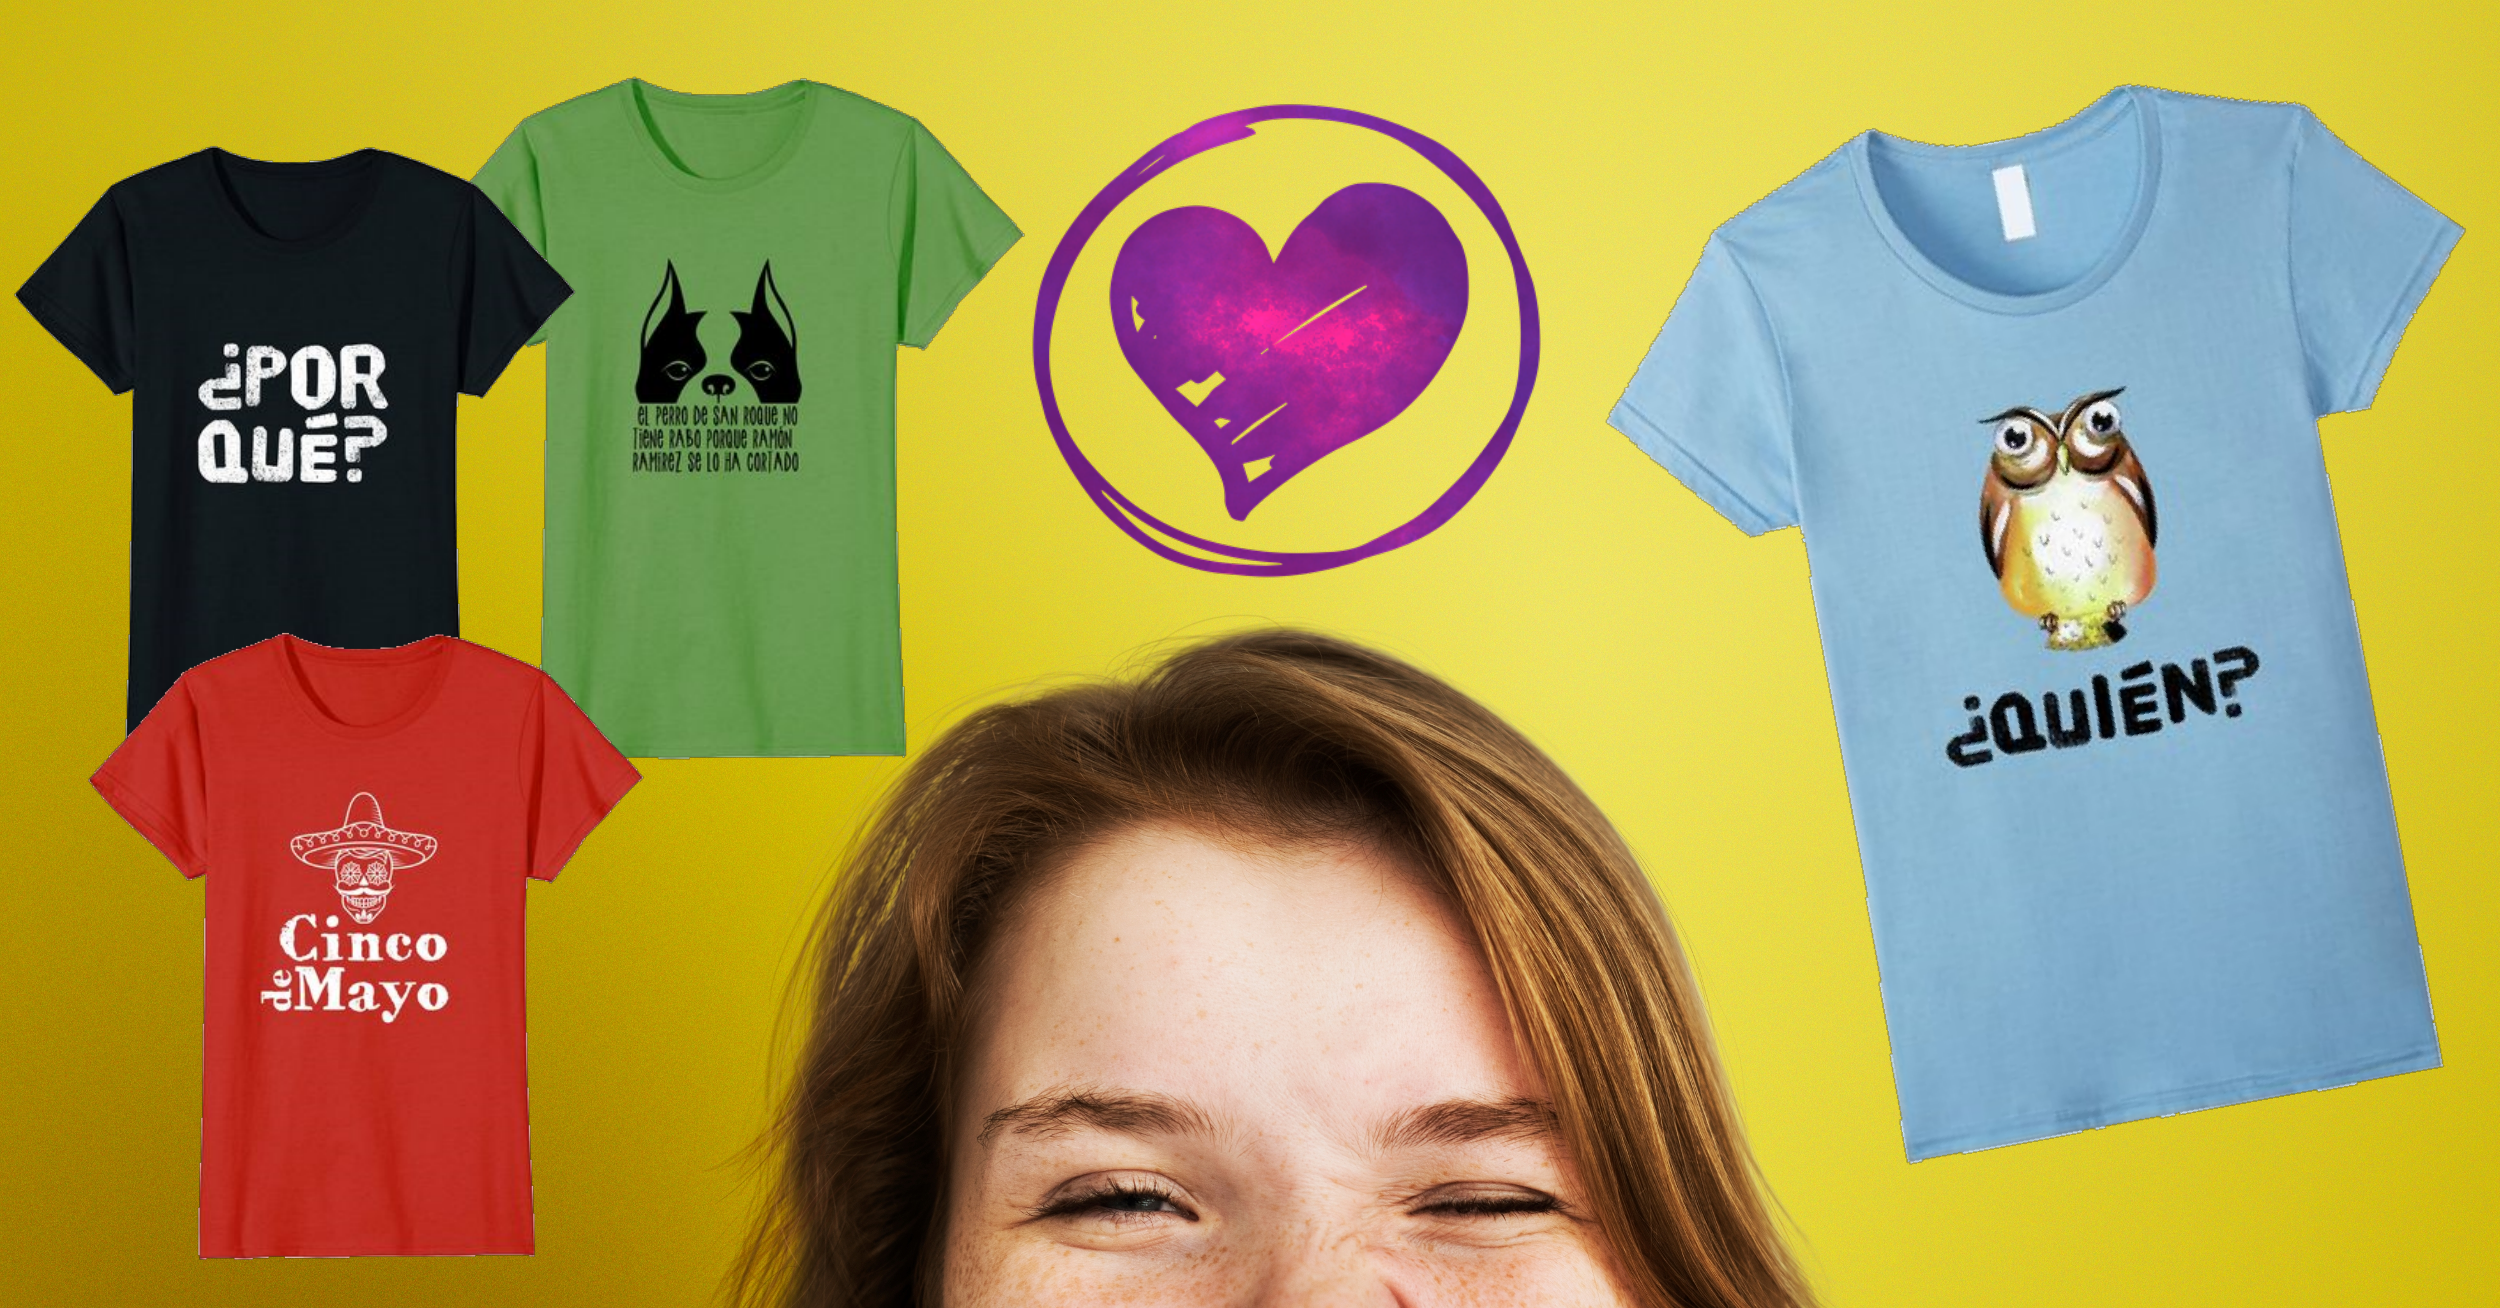 Need a T-Shirt? - Visit our page for fun Spanish Tees!